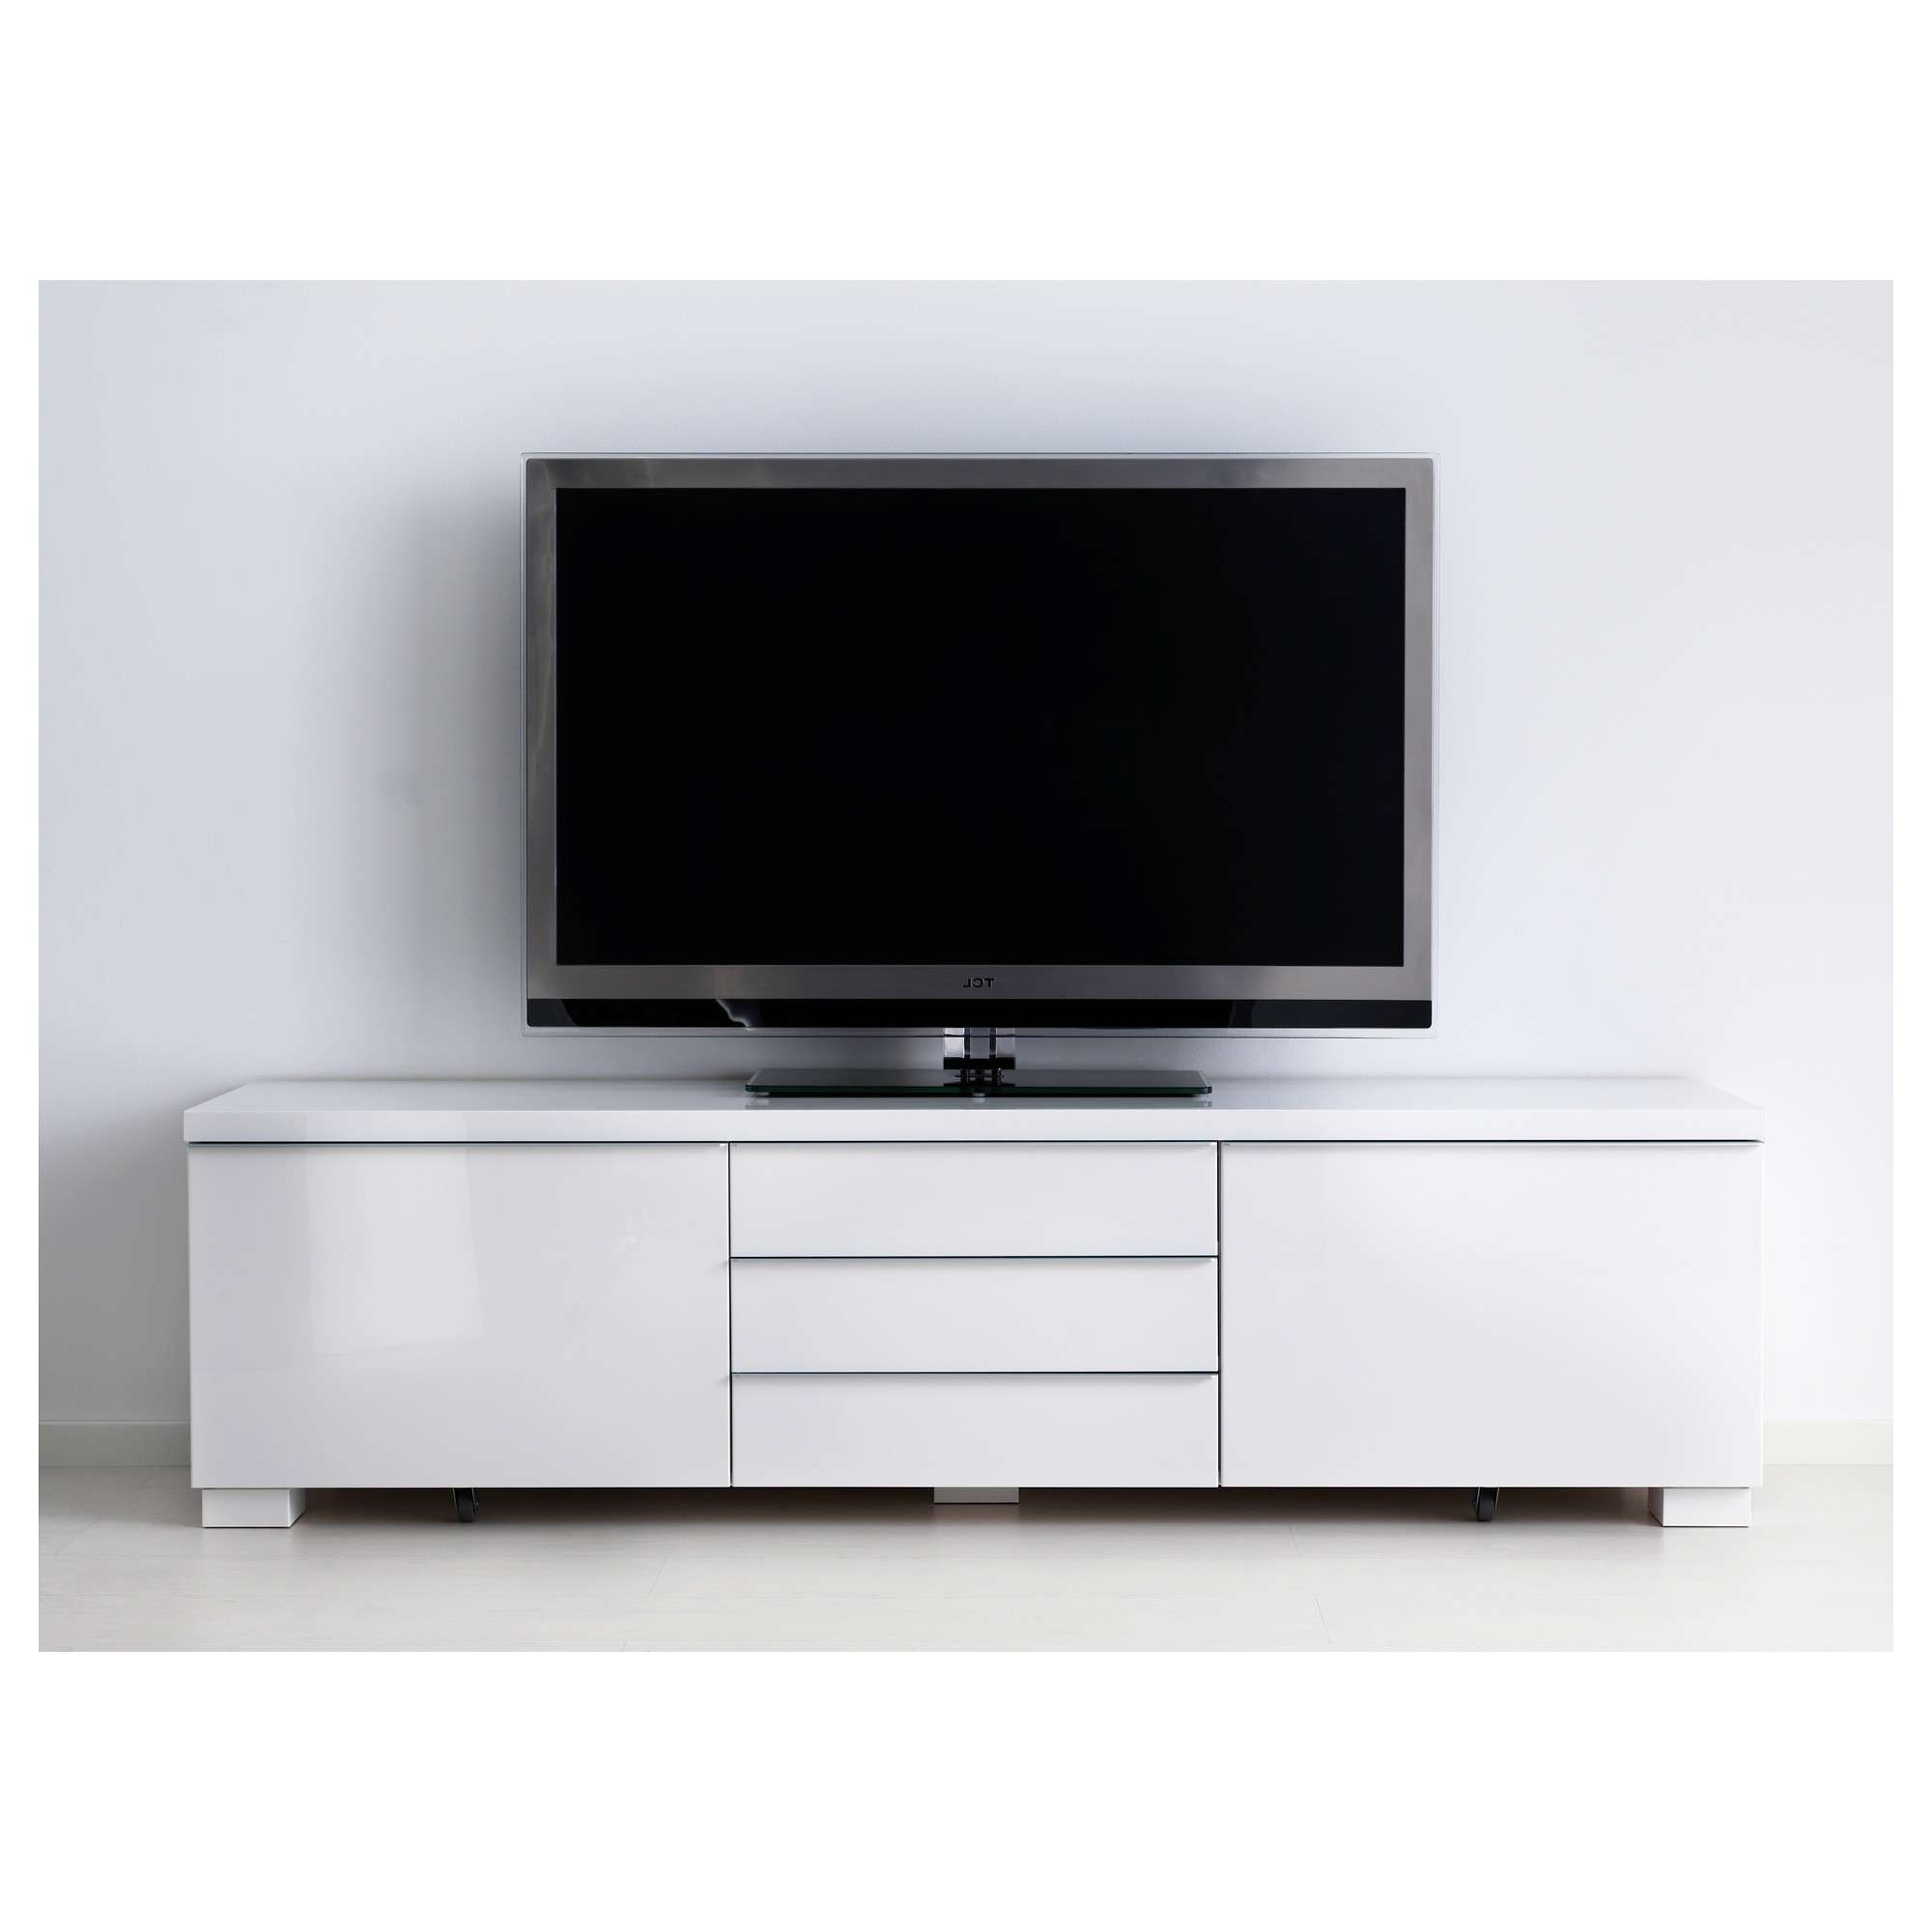 Simple Design White Tv Cabinet Bestå Burs Tv Unit Ikea – Cabinets With Regard To White Gloss Tv Stands With Drawers (View 2 of 15)